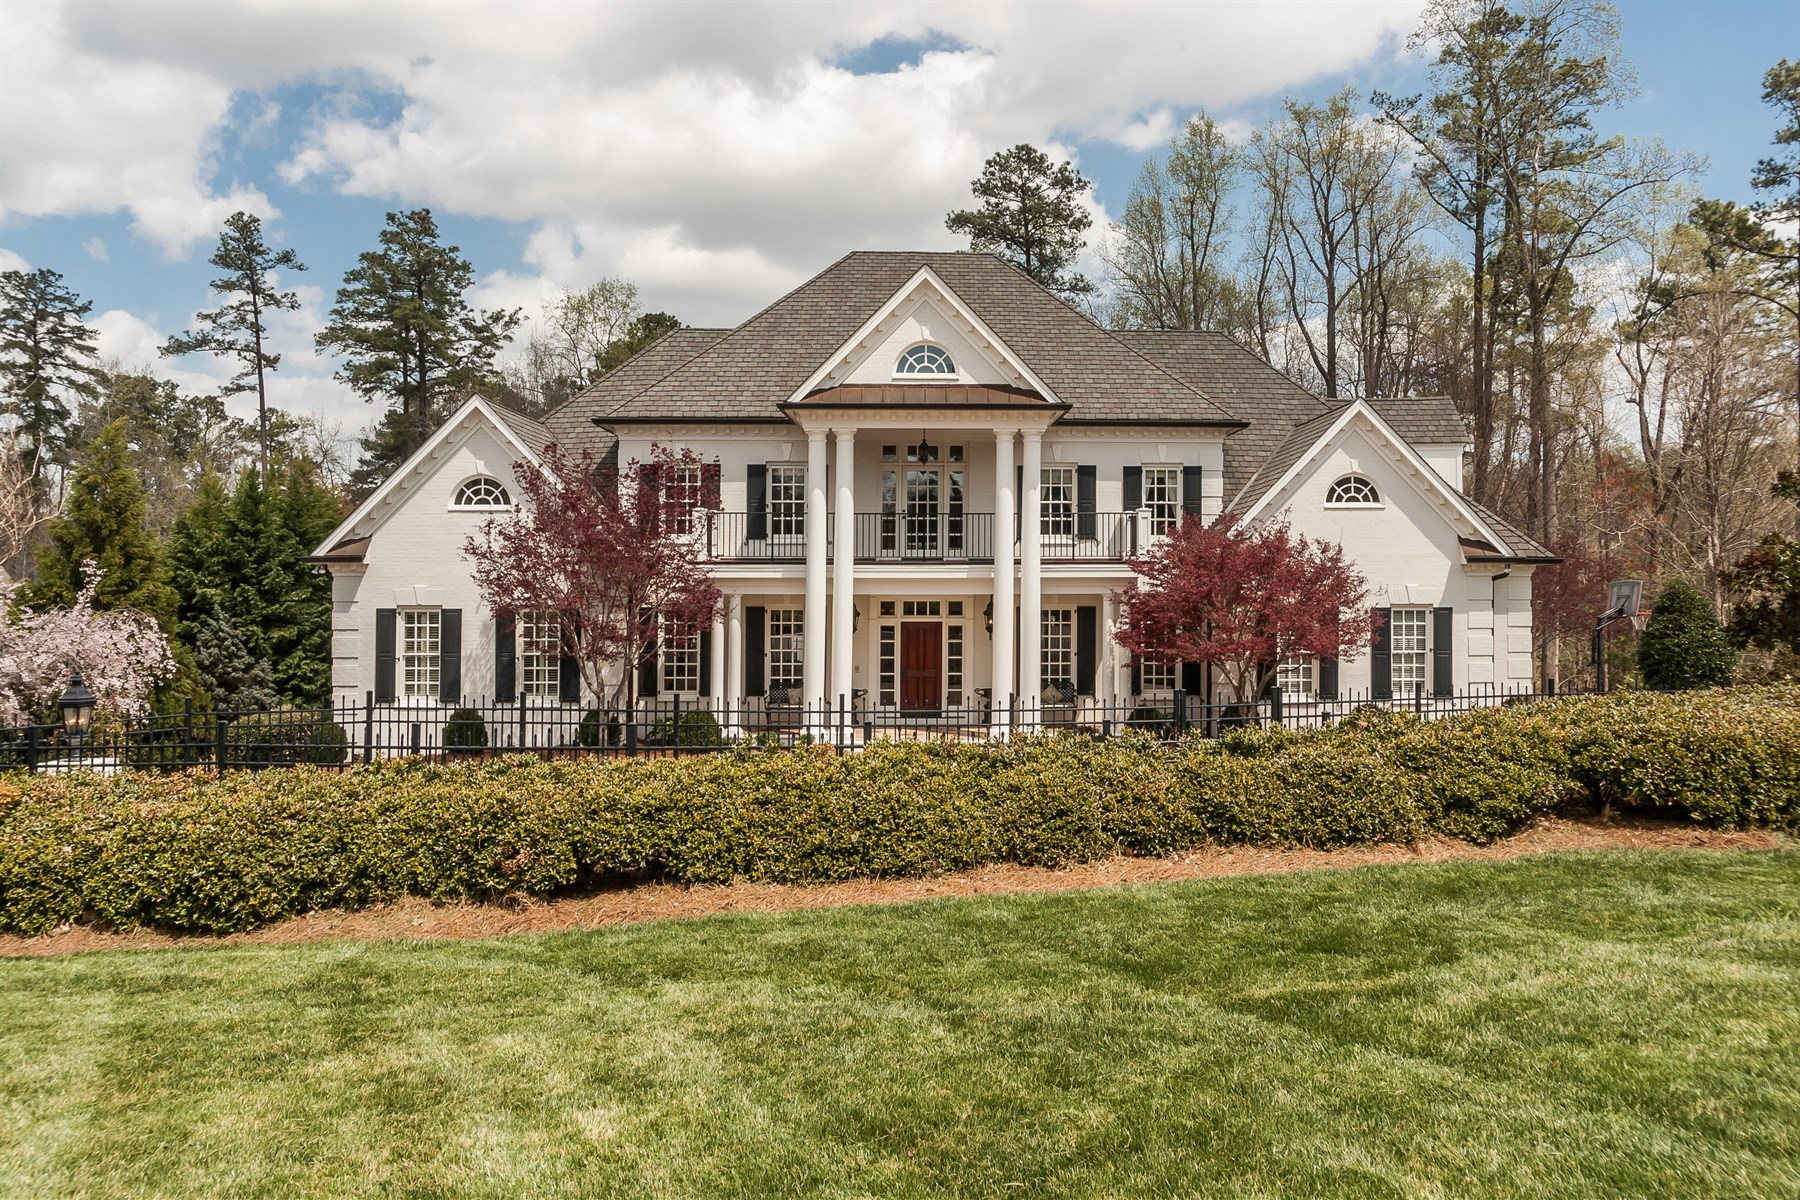 Casa Unifamiliar por un Venta en Beautiful Devon Estate 4708 Wynneford Way Raleigh, Carolina Del Norte 27614 Estados Unidos